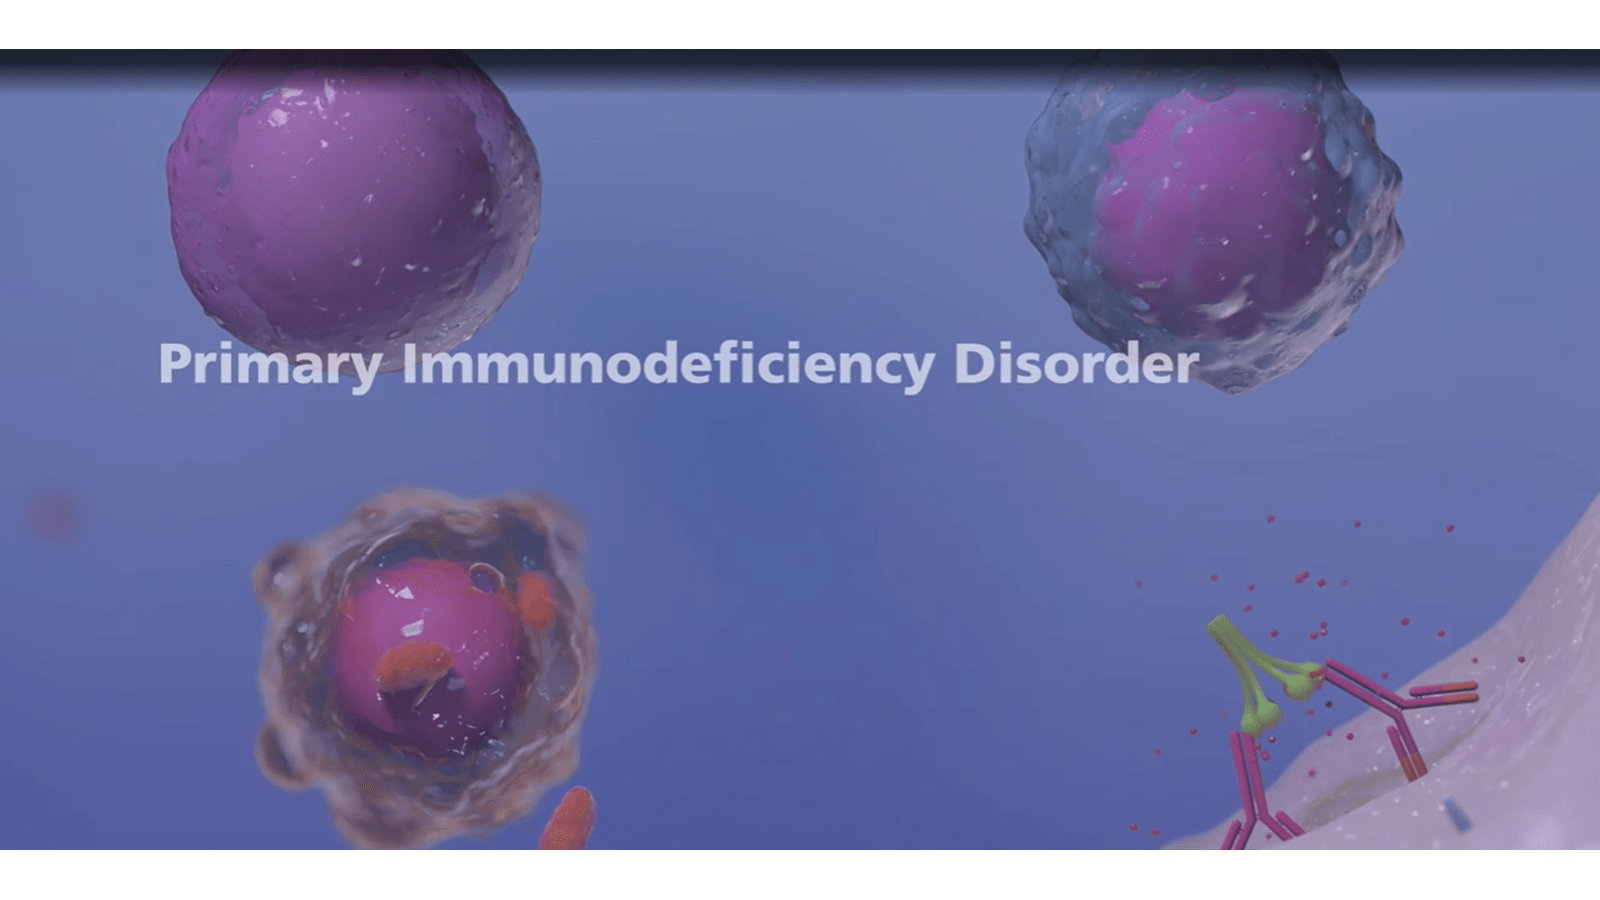 Microscopic view of primary immunodeficiency disease